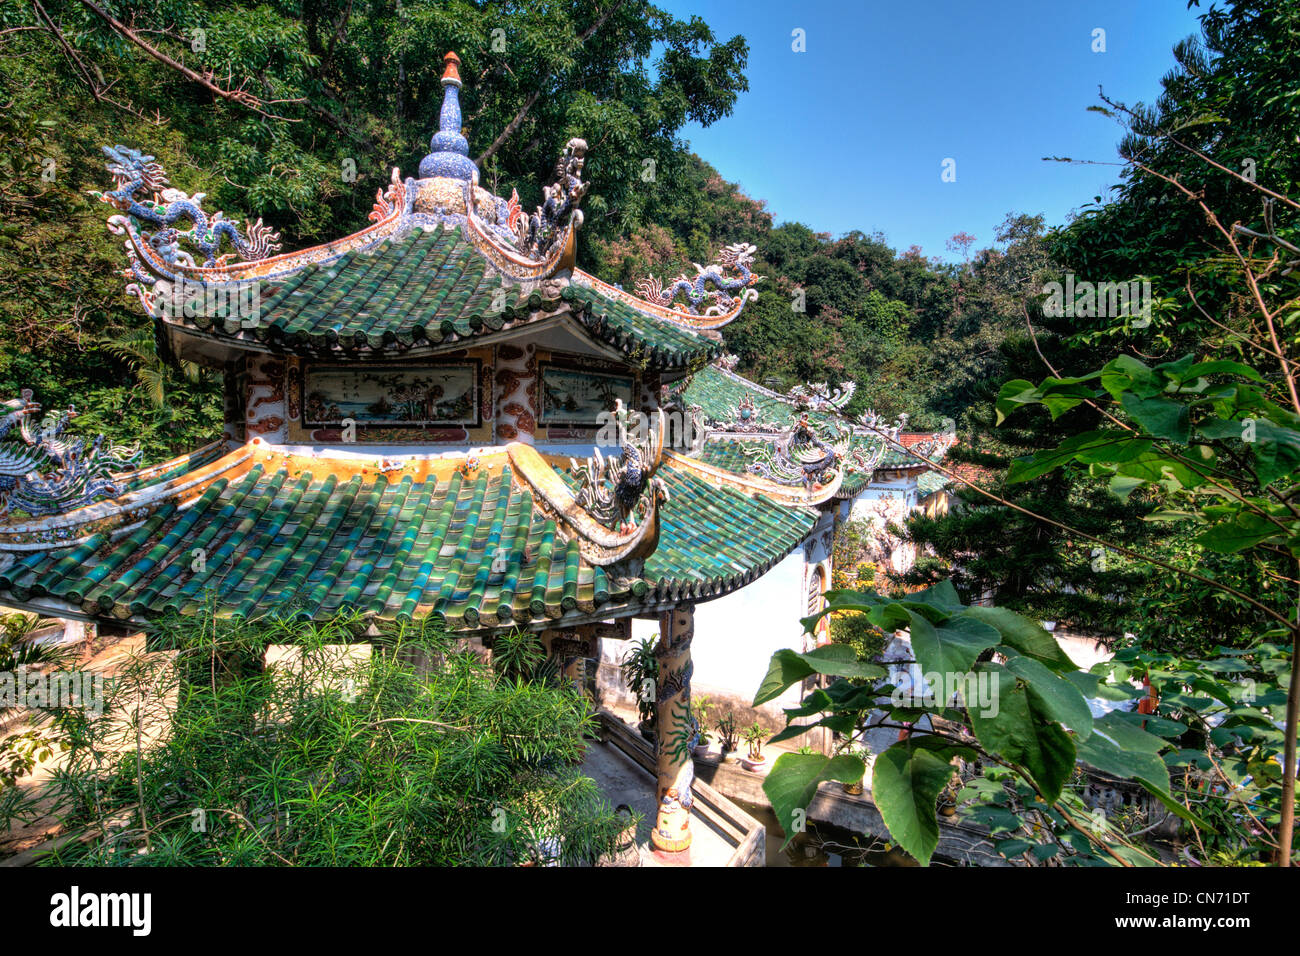 Linh Ong Pagoda roof tops, Thuy Son, Marble mountain (ngu hanh son), Vietnam - Stock Image